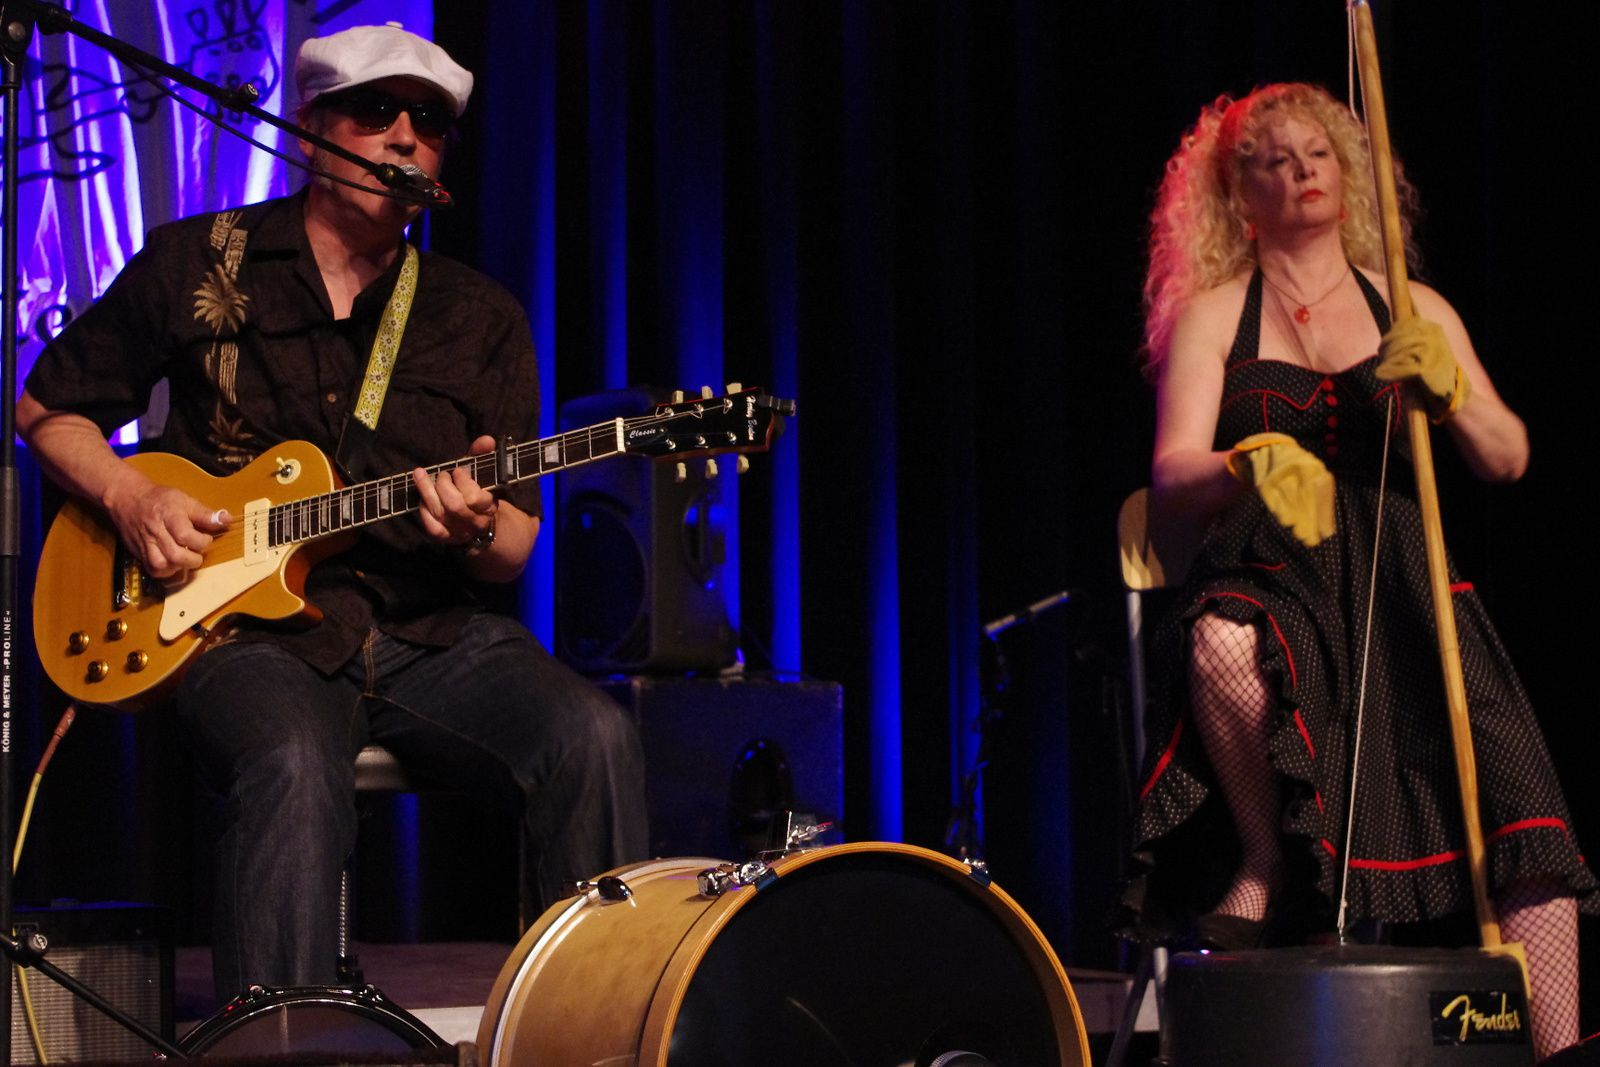 Black Cat Joe & Miss Corina - 19 avril 2014 - Delirium Blues festival, Lichtervelde (B)